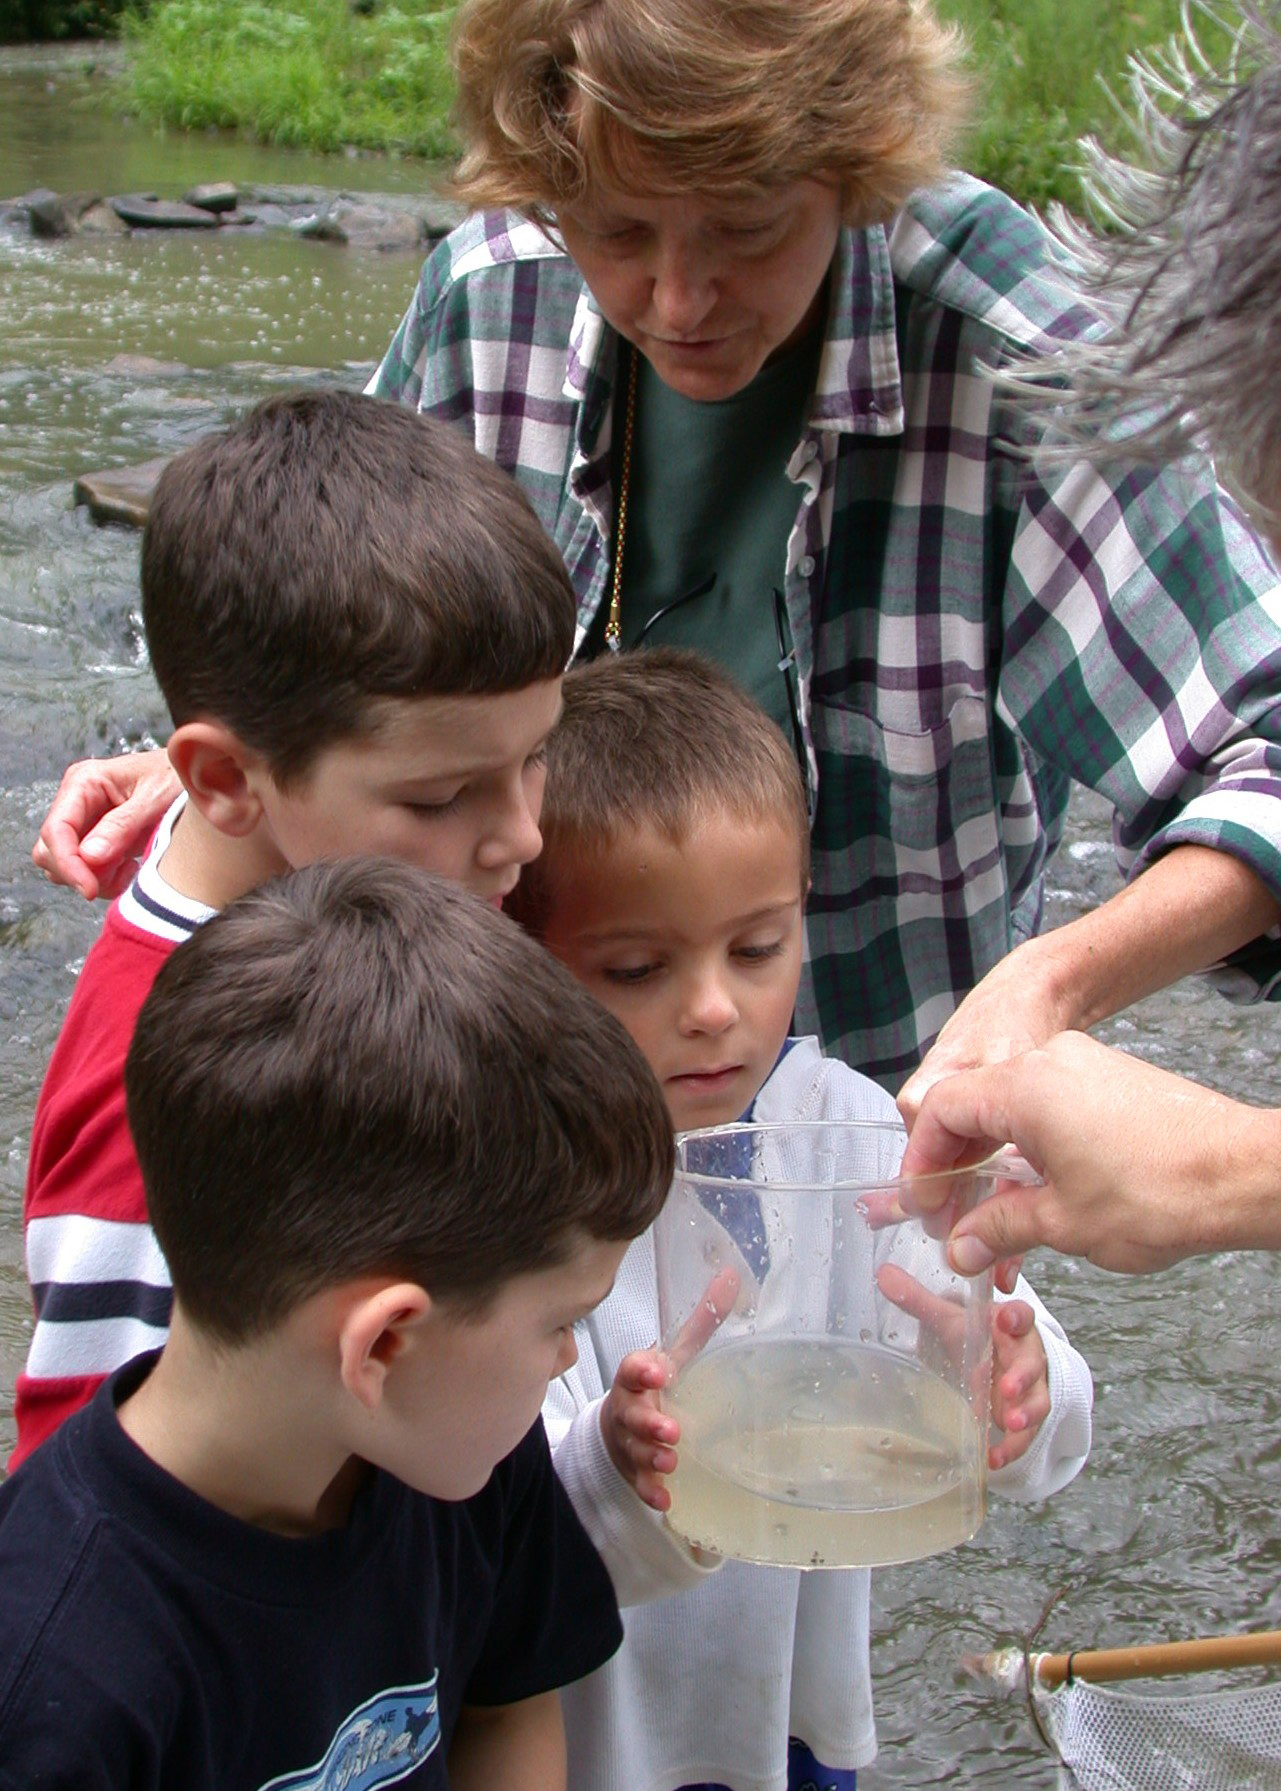 SUMMER IS ON THE HORIZON! REGISTER YOUR KIDS FOR CLEVELAND METROPARKS SUMMER DAY CAMPS